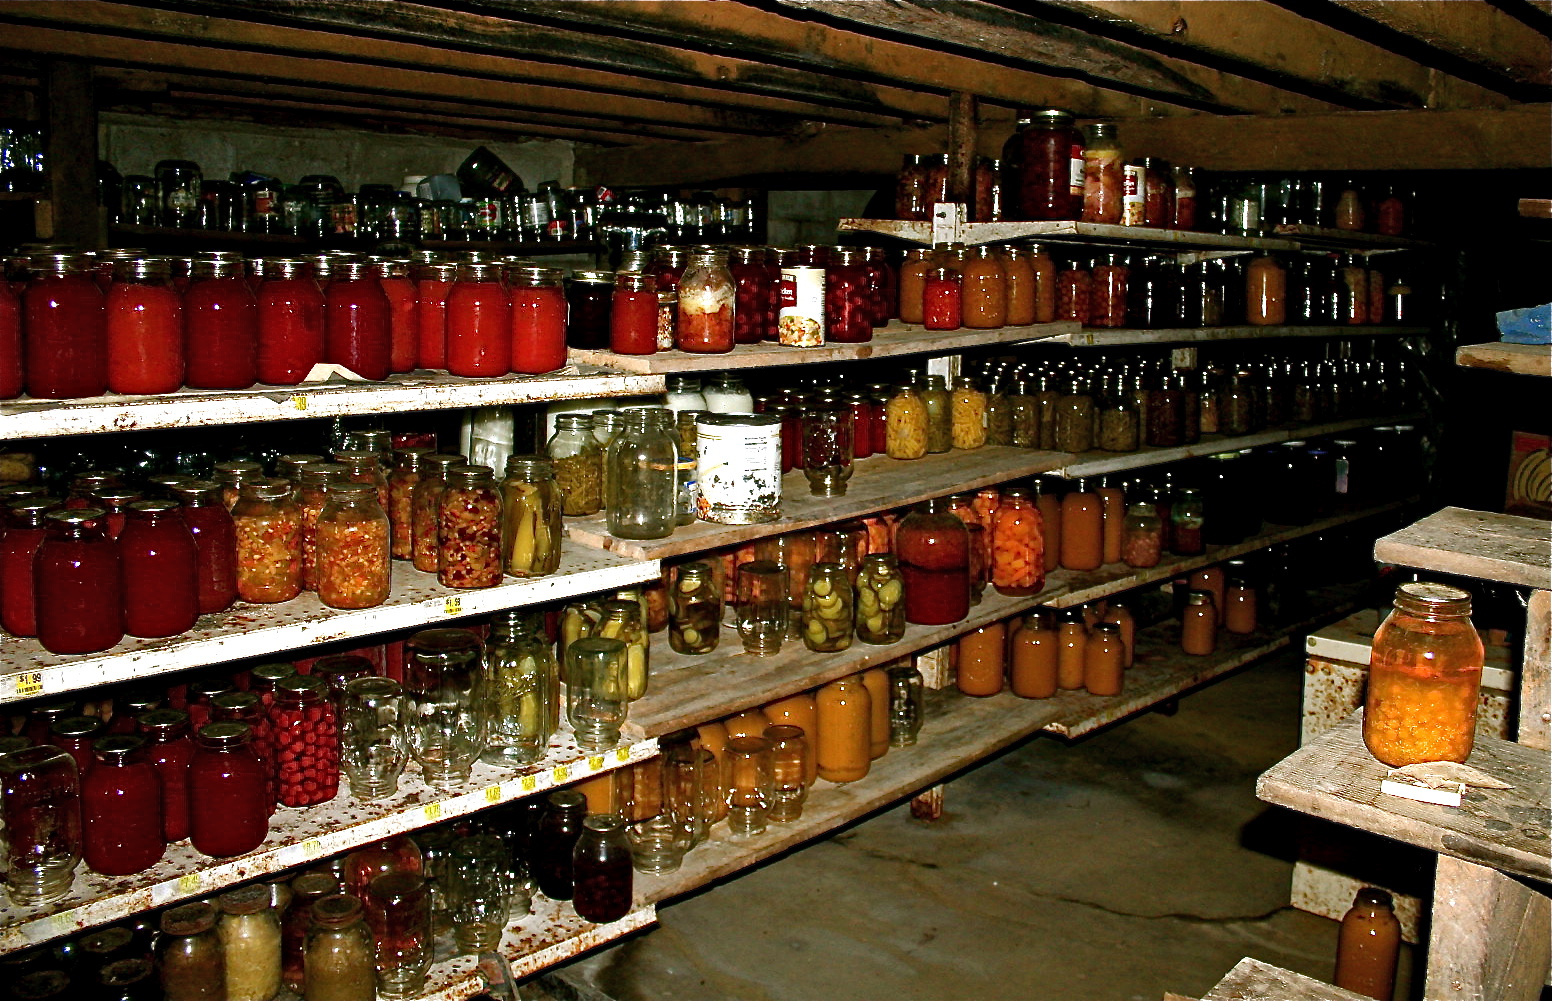 Farmwife at Midlife -: 'Obsessive Canning Disorder' Much?